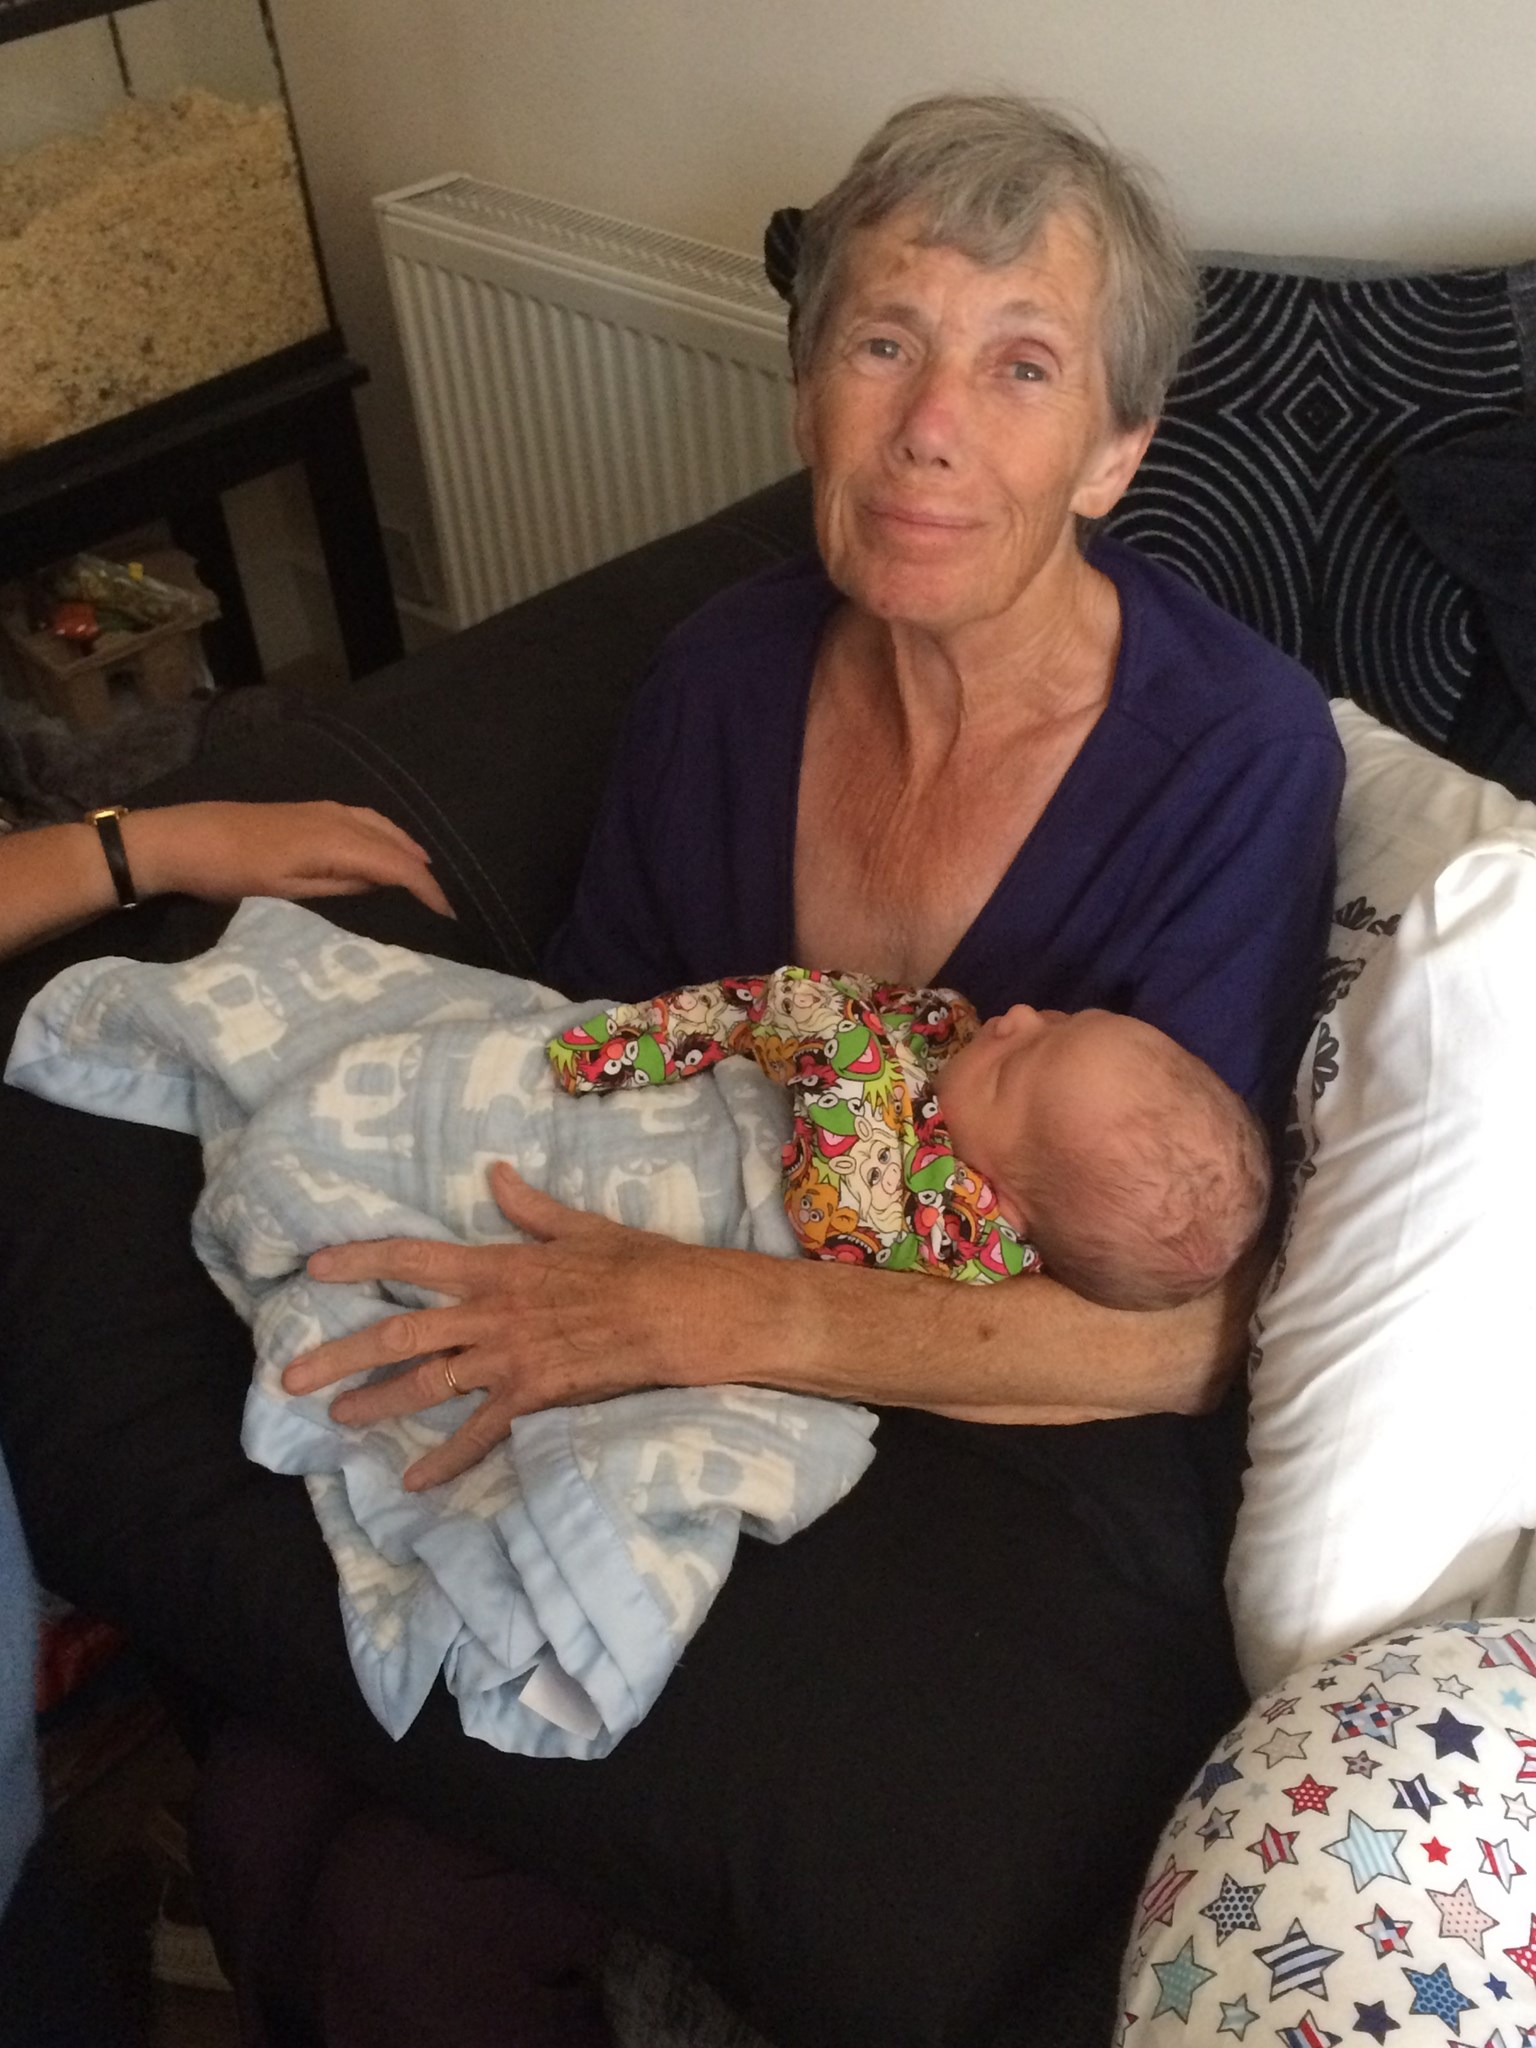 Meeting her greatgrandson Logan for the first time